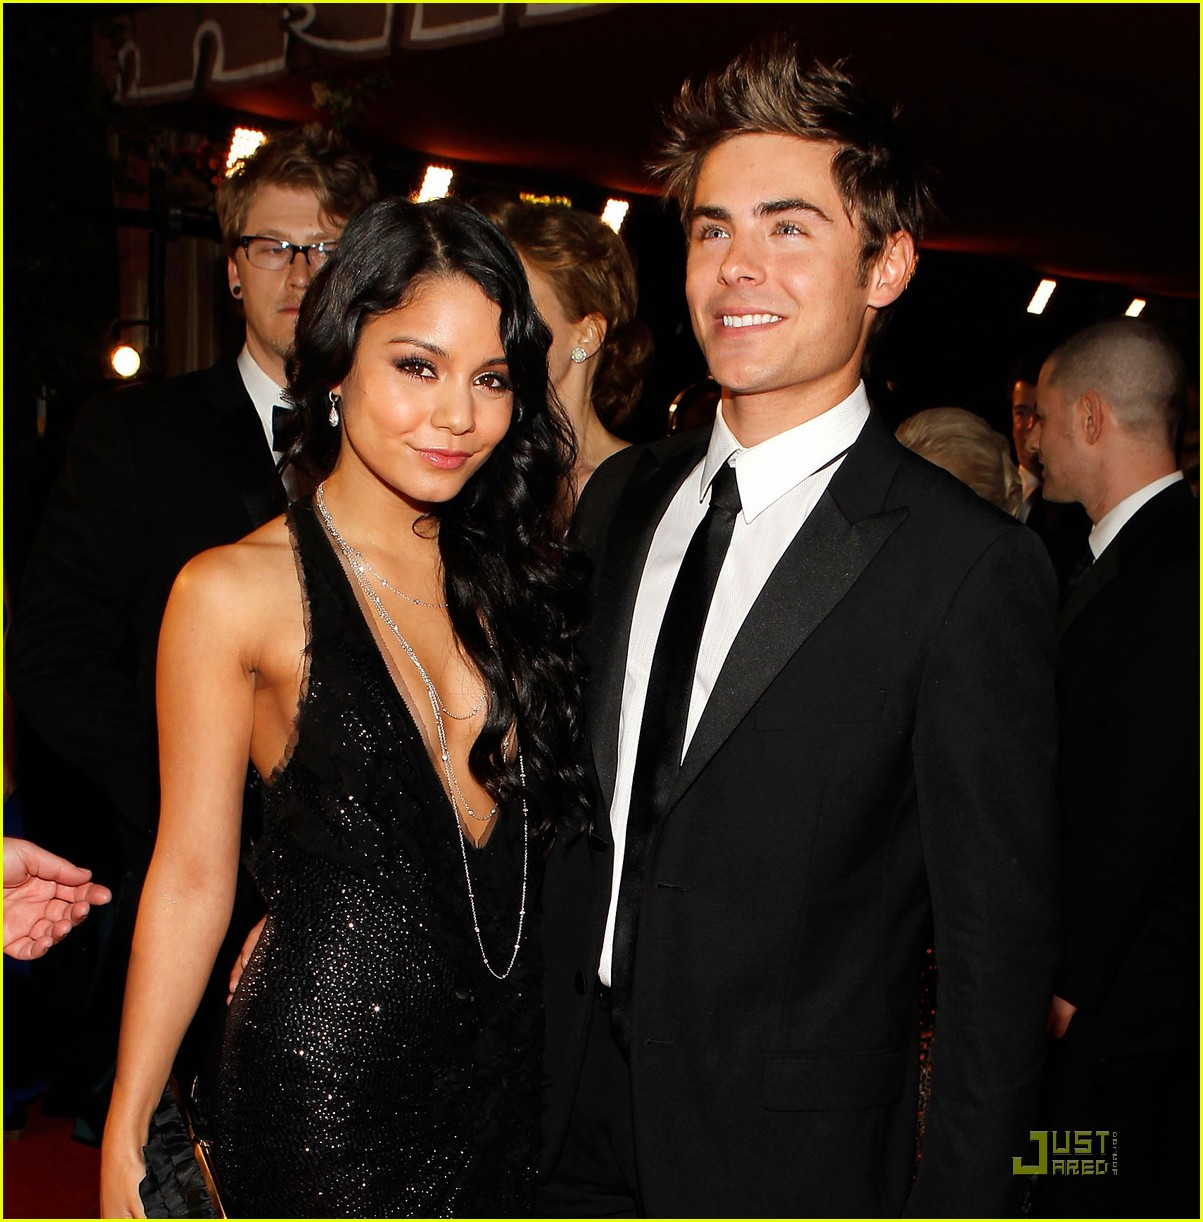 zac efron and vanessa hudgens still dating 2013